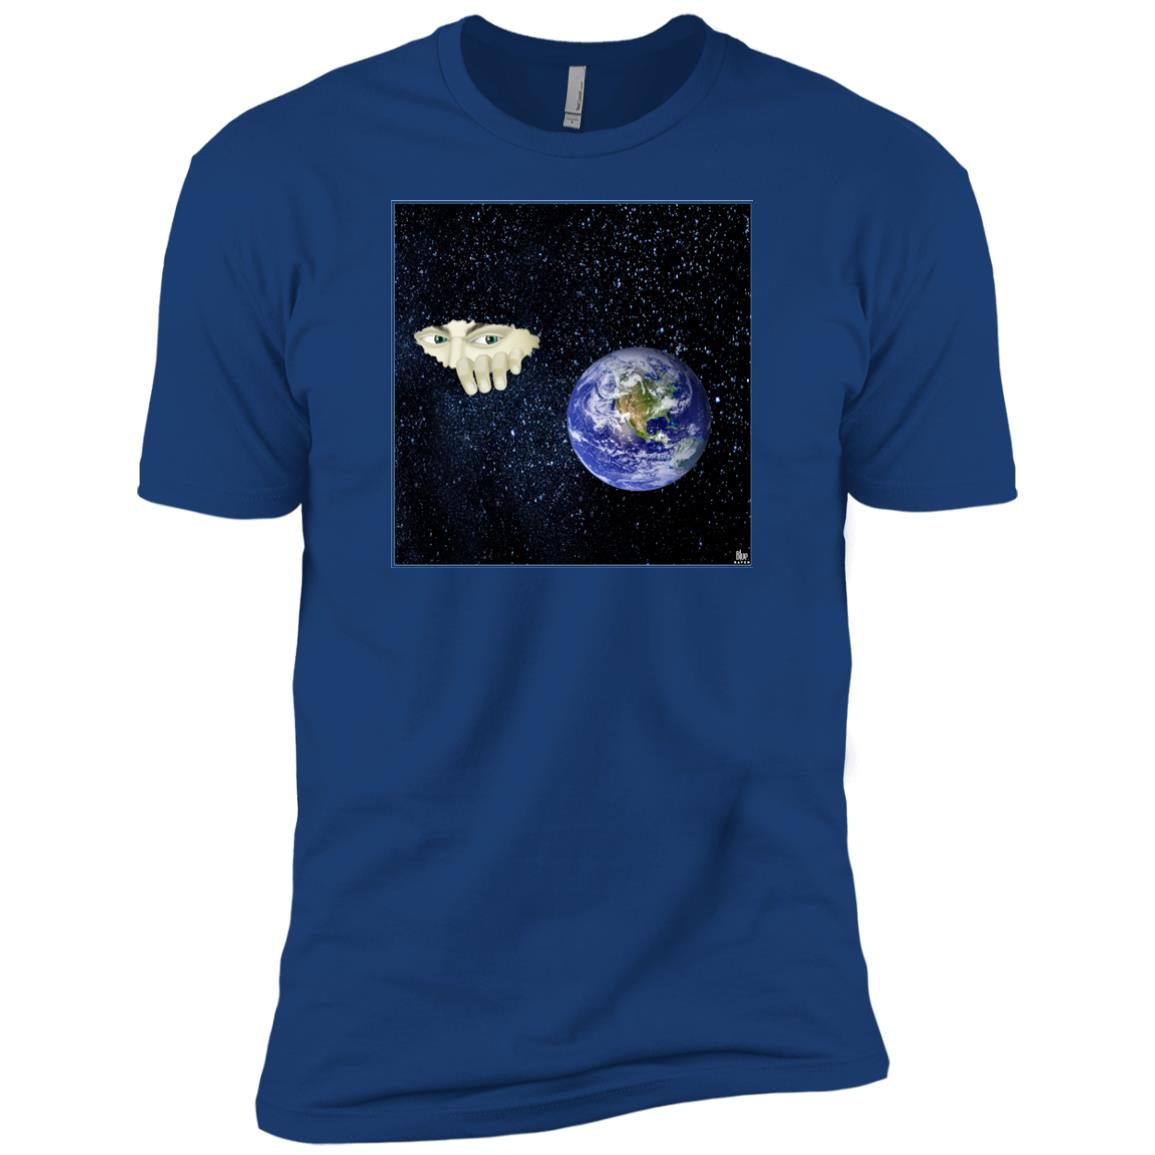 SOMEWHERE OUT THERE - Men's Premium Fitted T-Shirt